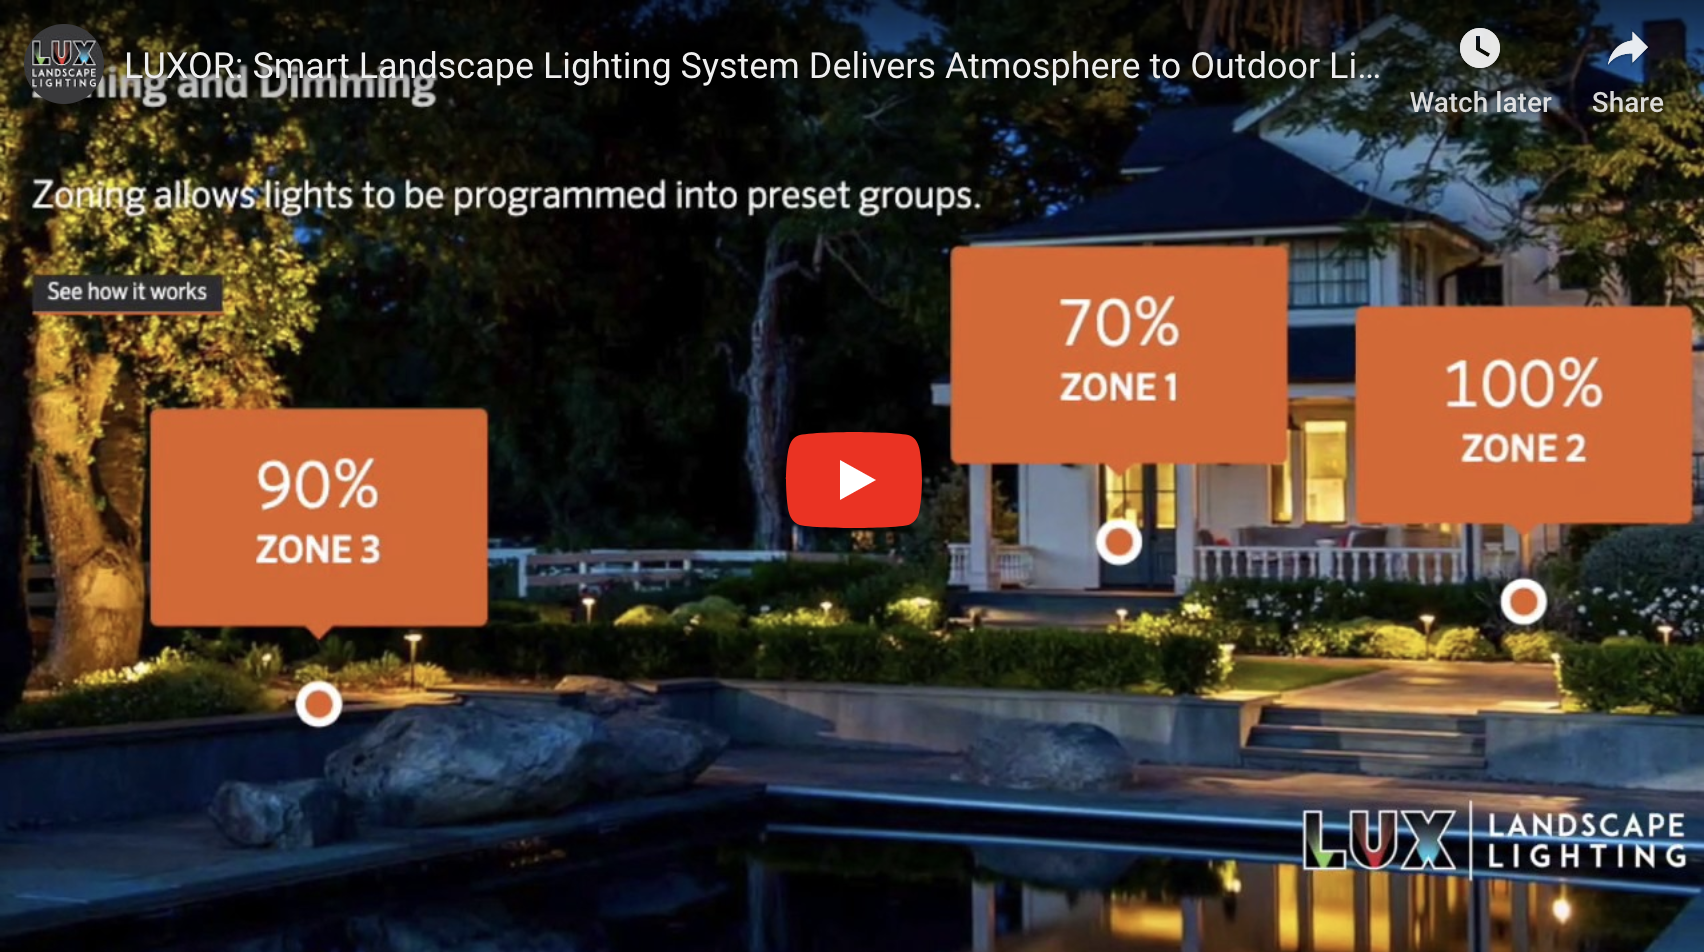 [VIDEO] LUXOR: Smart Landscape Lighting System Delivers Atmosphere to Outdoor Living